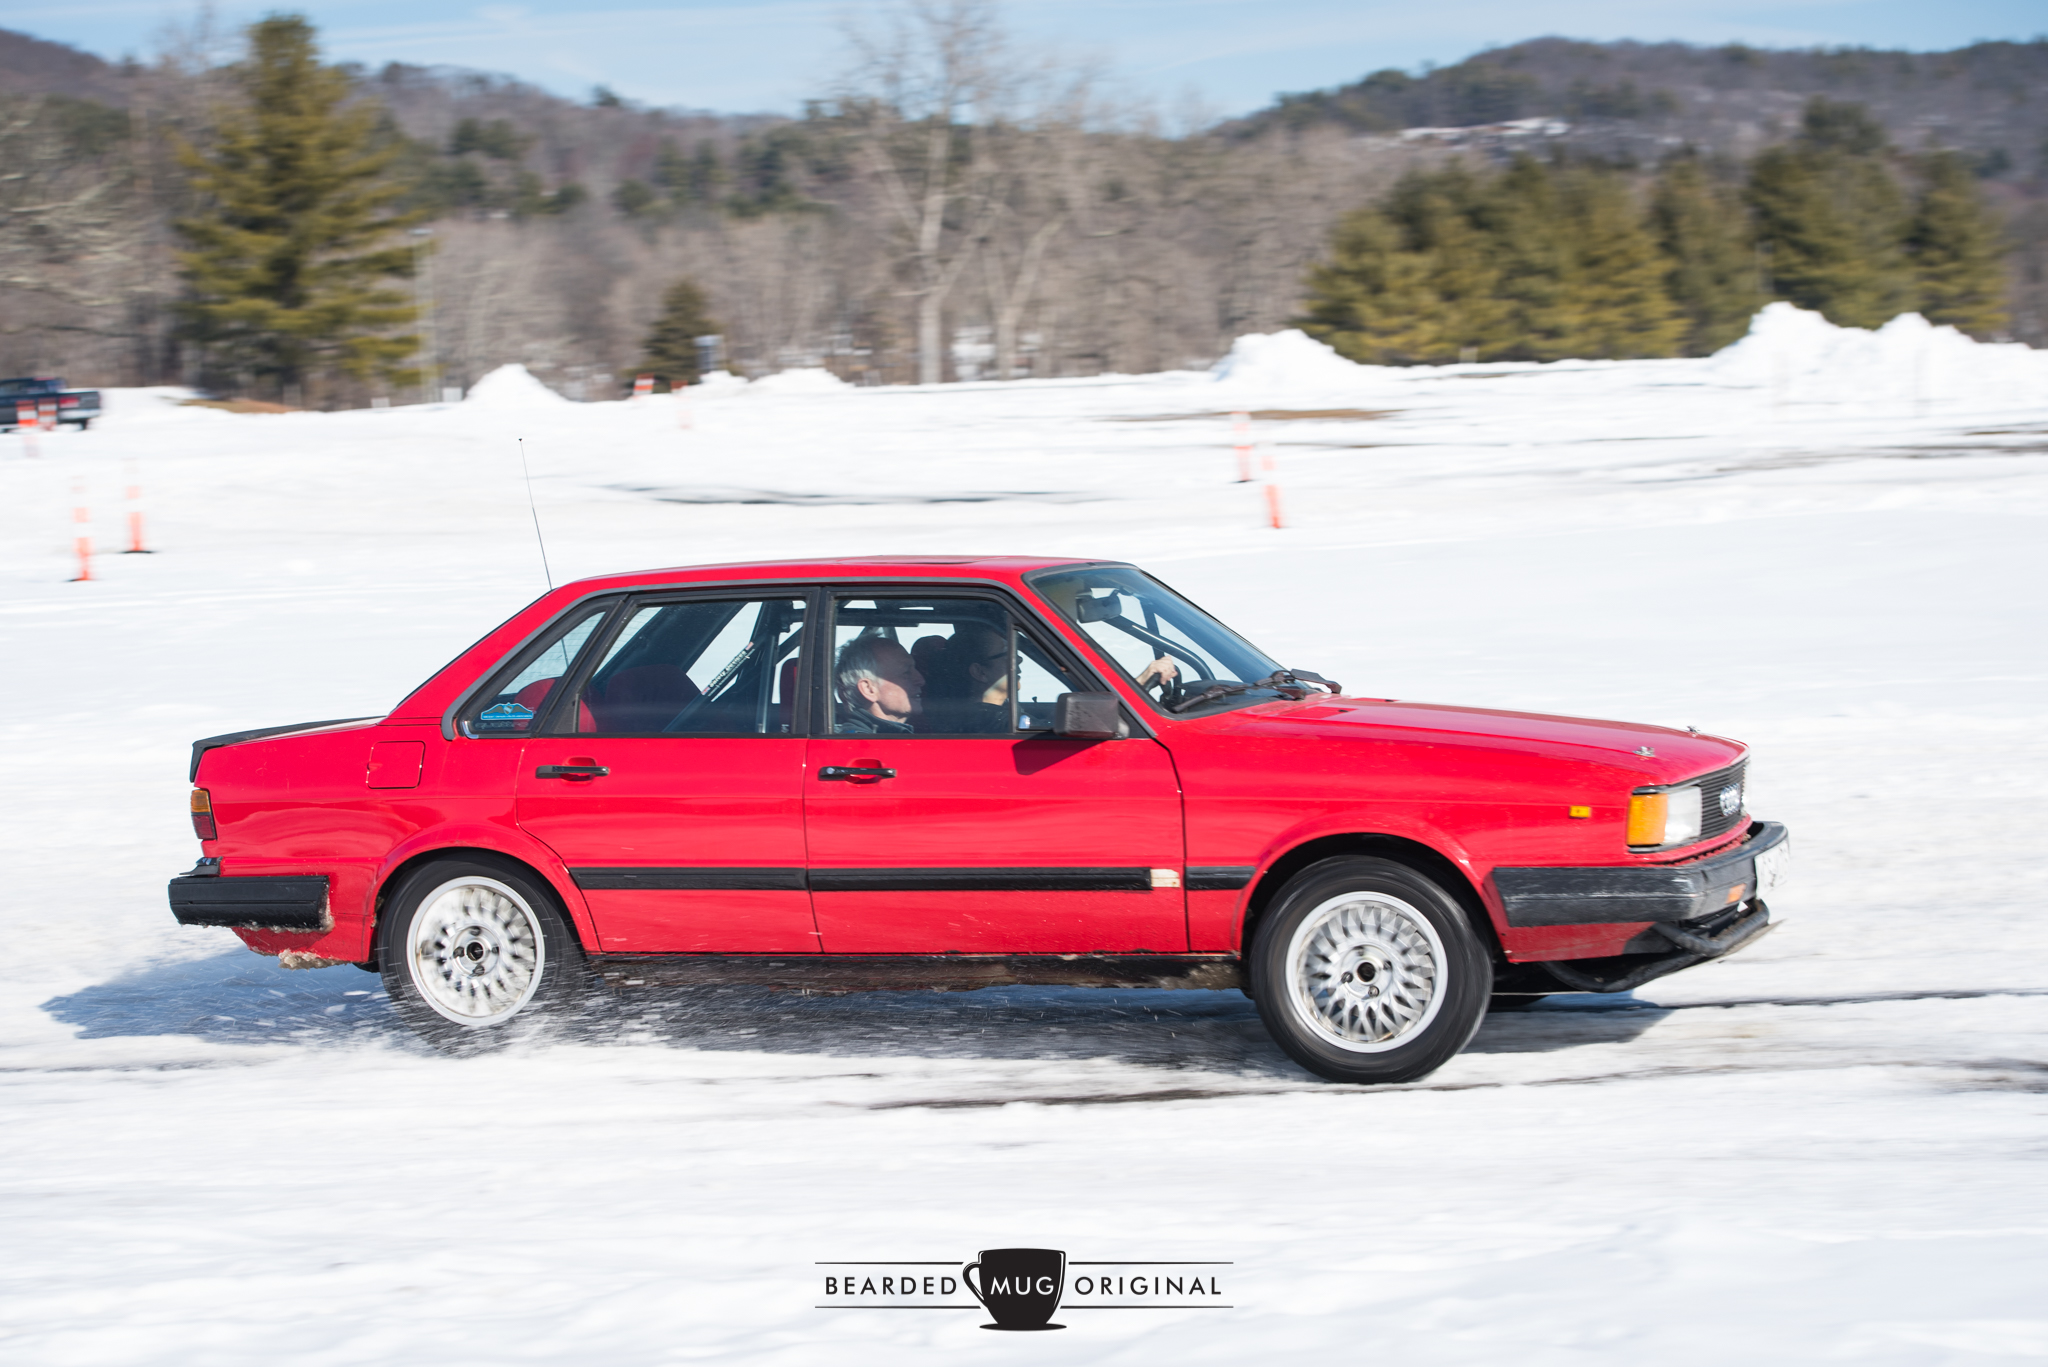 This Audi 4000, with Simon riding shotgun, was built to perform. And perform well it did, with quattro AWD adding grip to otherwise slippery conditions.